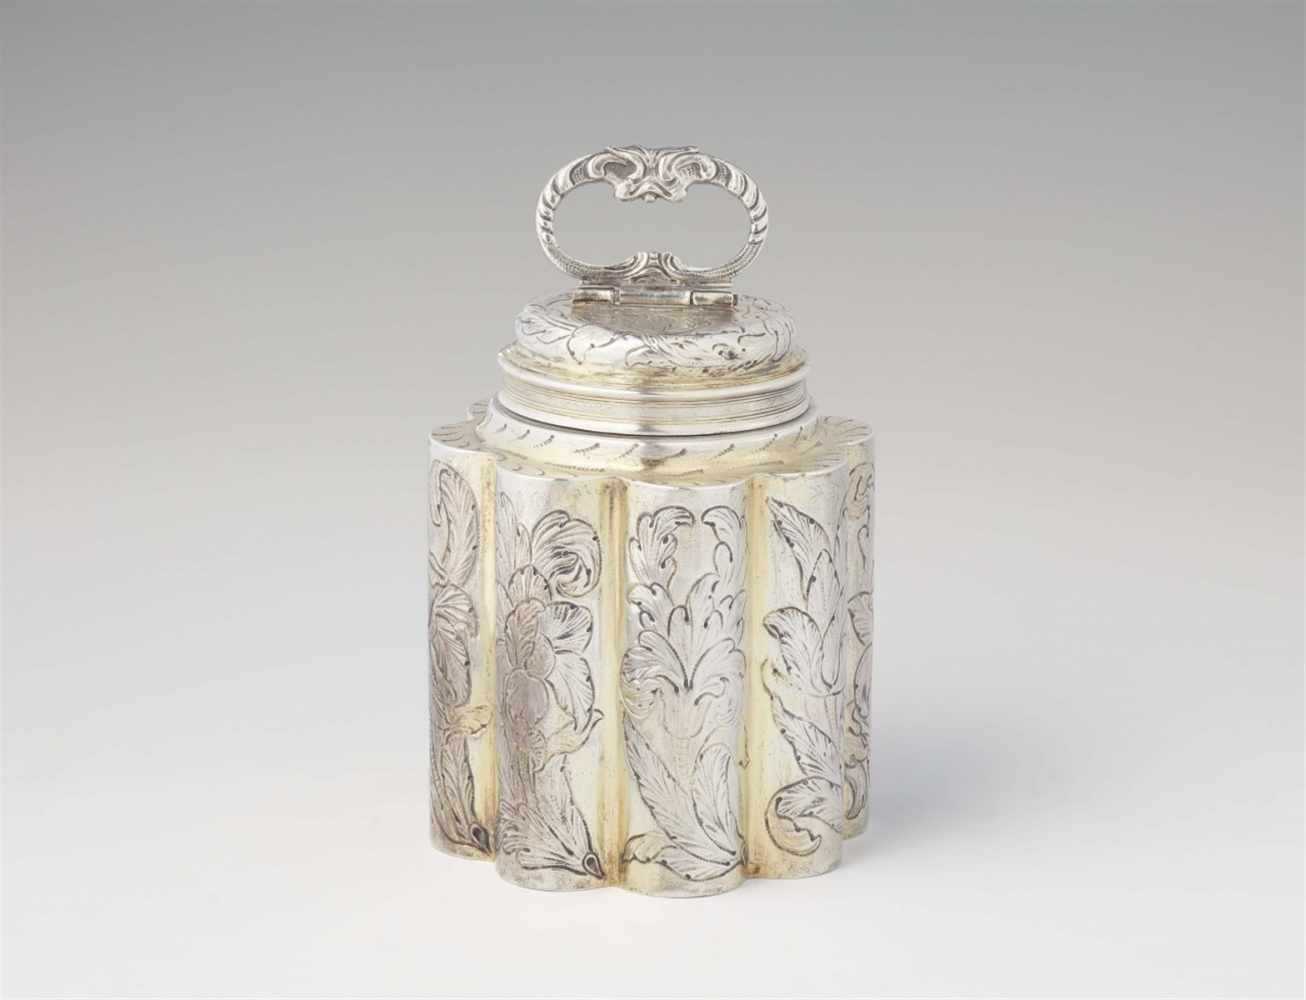 Lot 302 - An Augsburg parcel gilt silver flaskOf octagonal section with screw top and hinged handle. Decorated